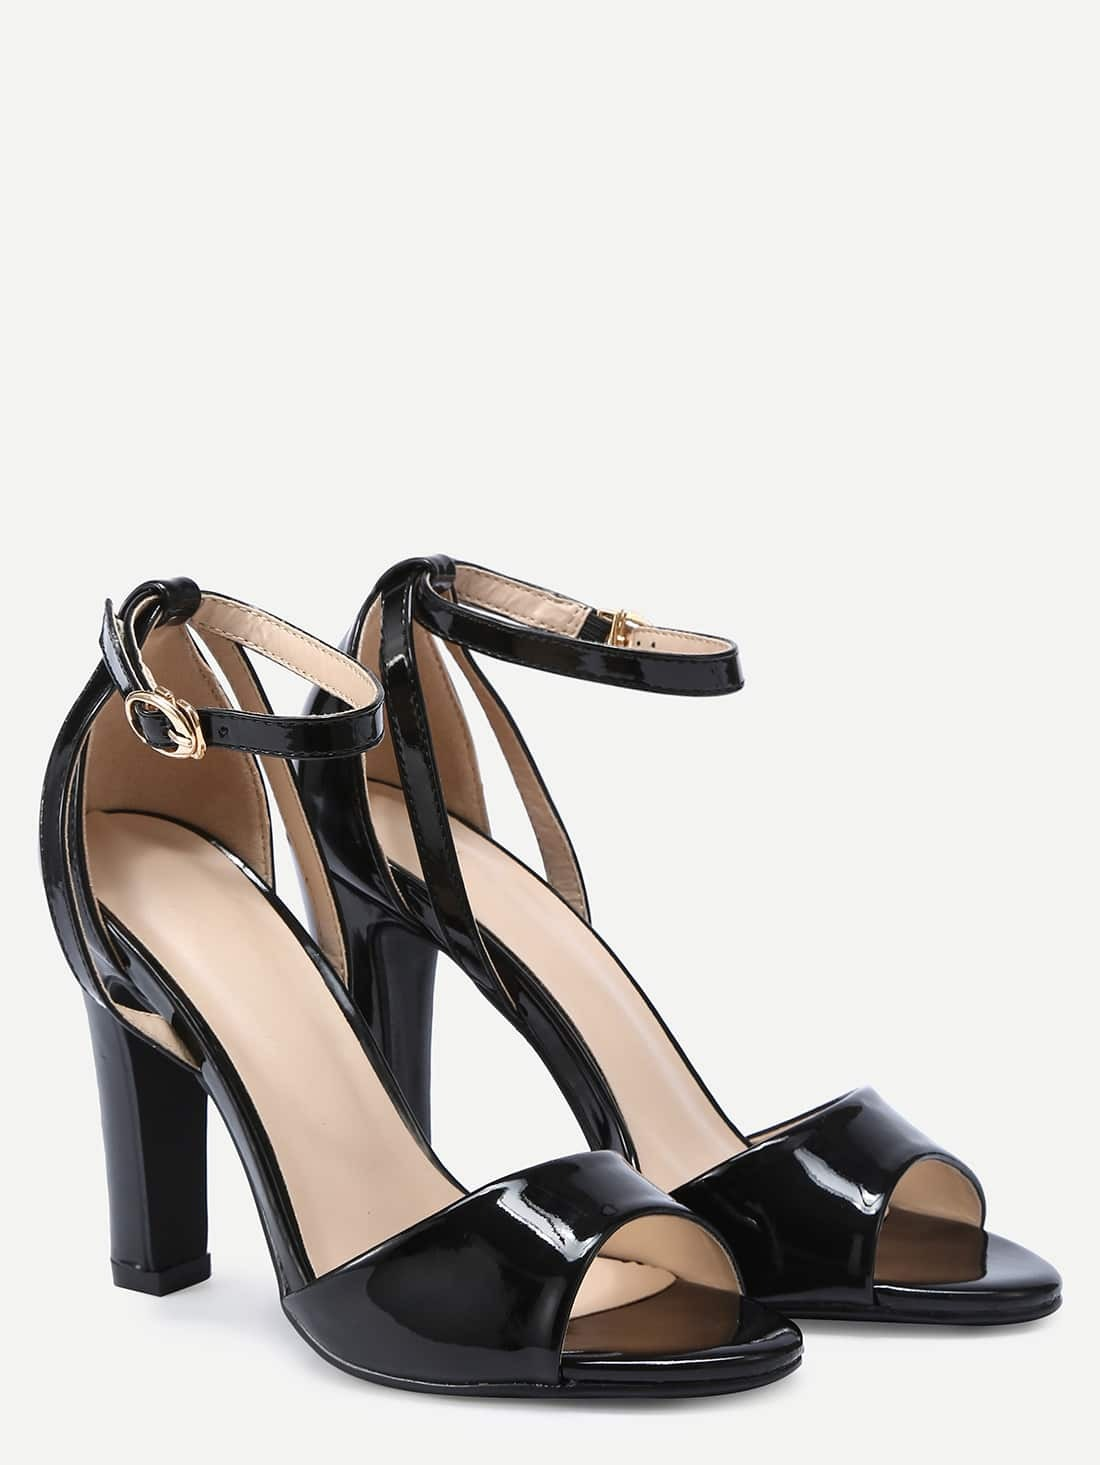 Buy low price, high quality black ankle strap heel sandals with worldwide shipping on dirtyinstalzonevx6.ga